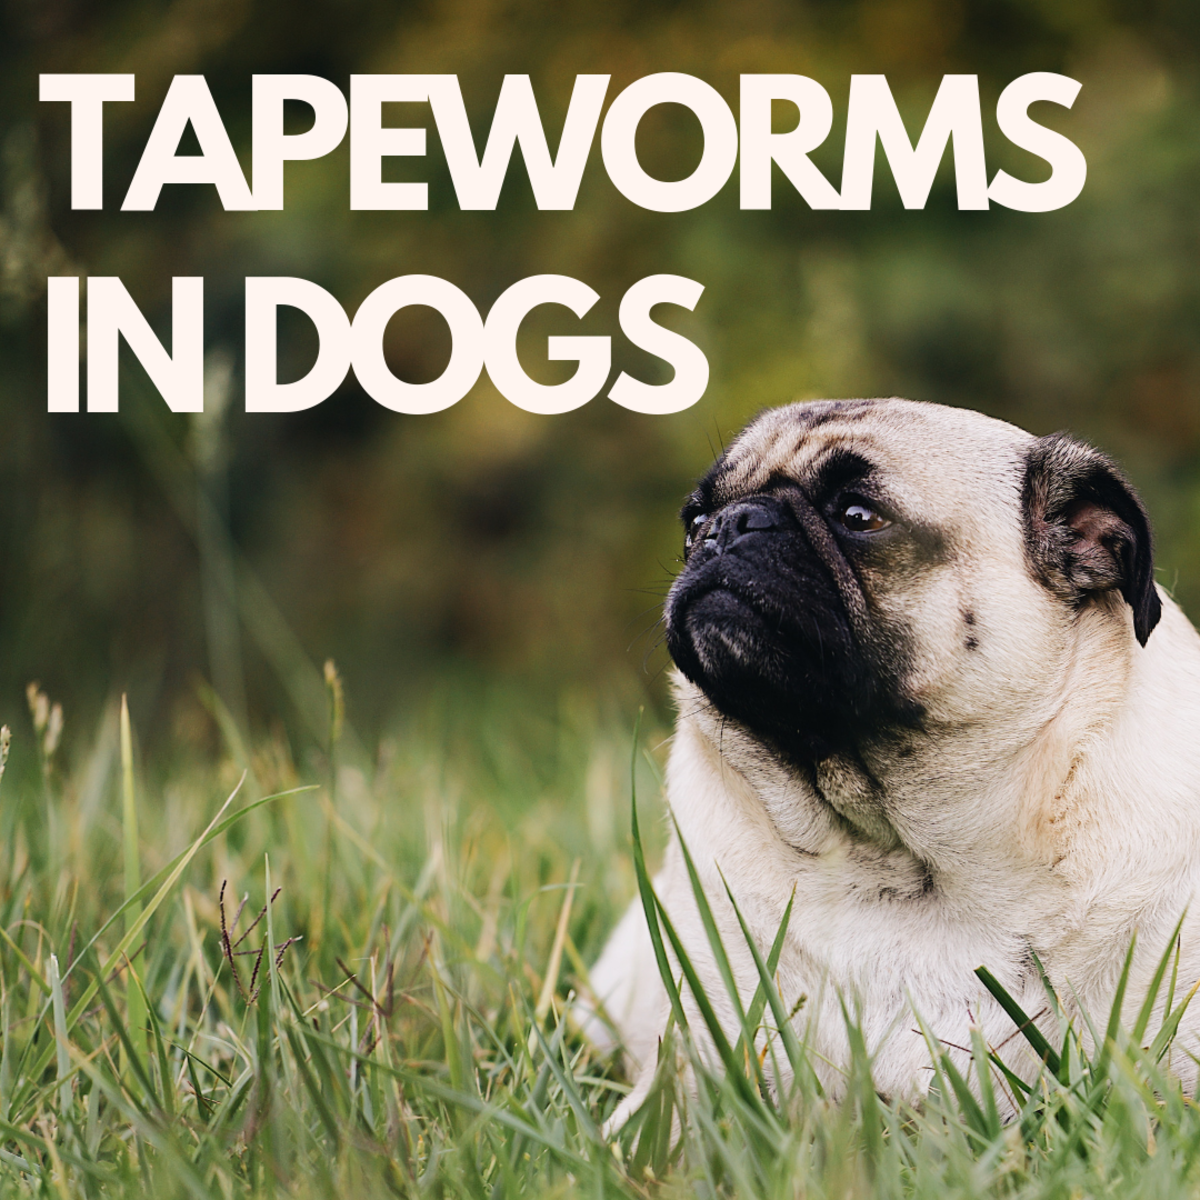 Tapeworms in dogs: life cycle and treatment.